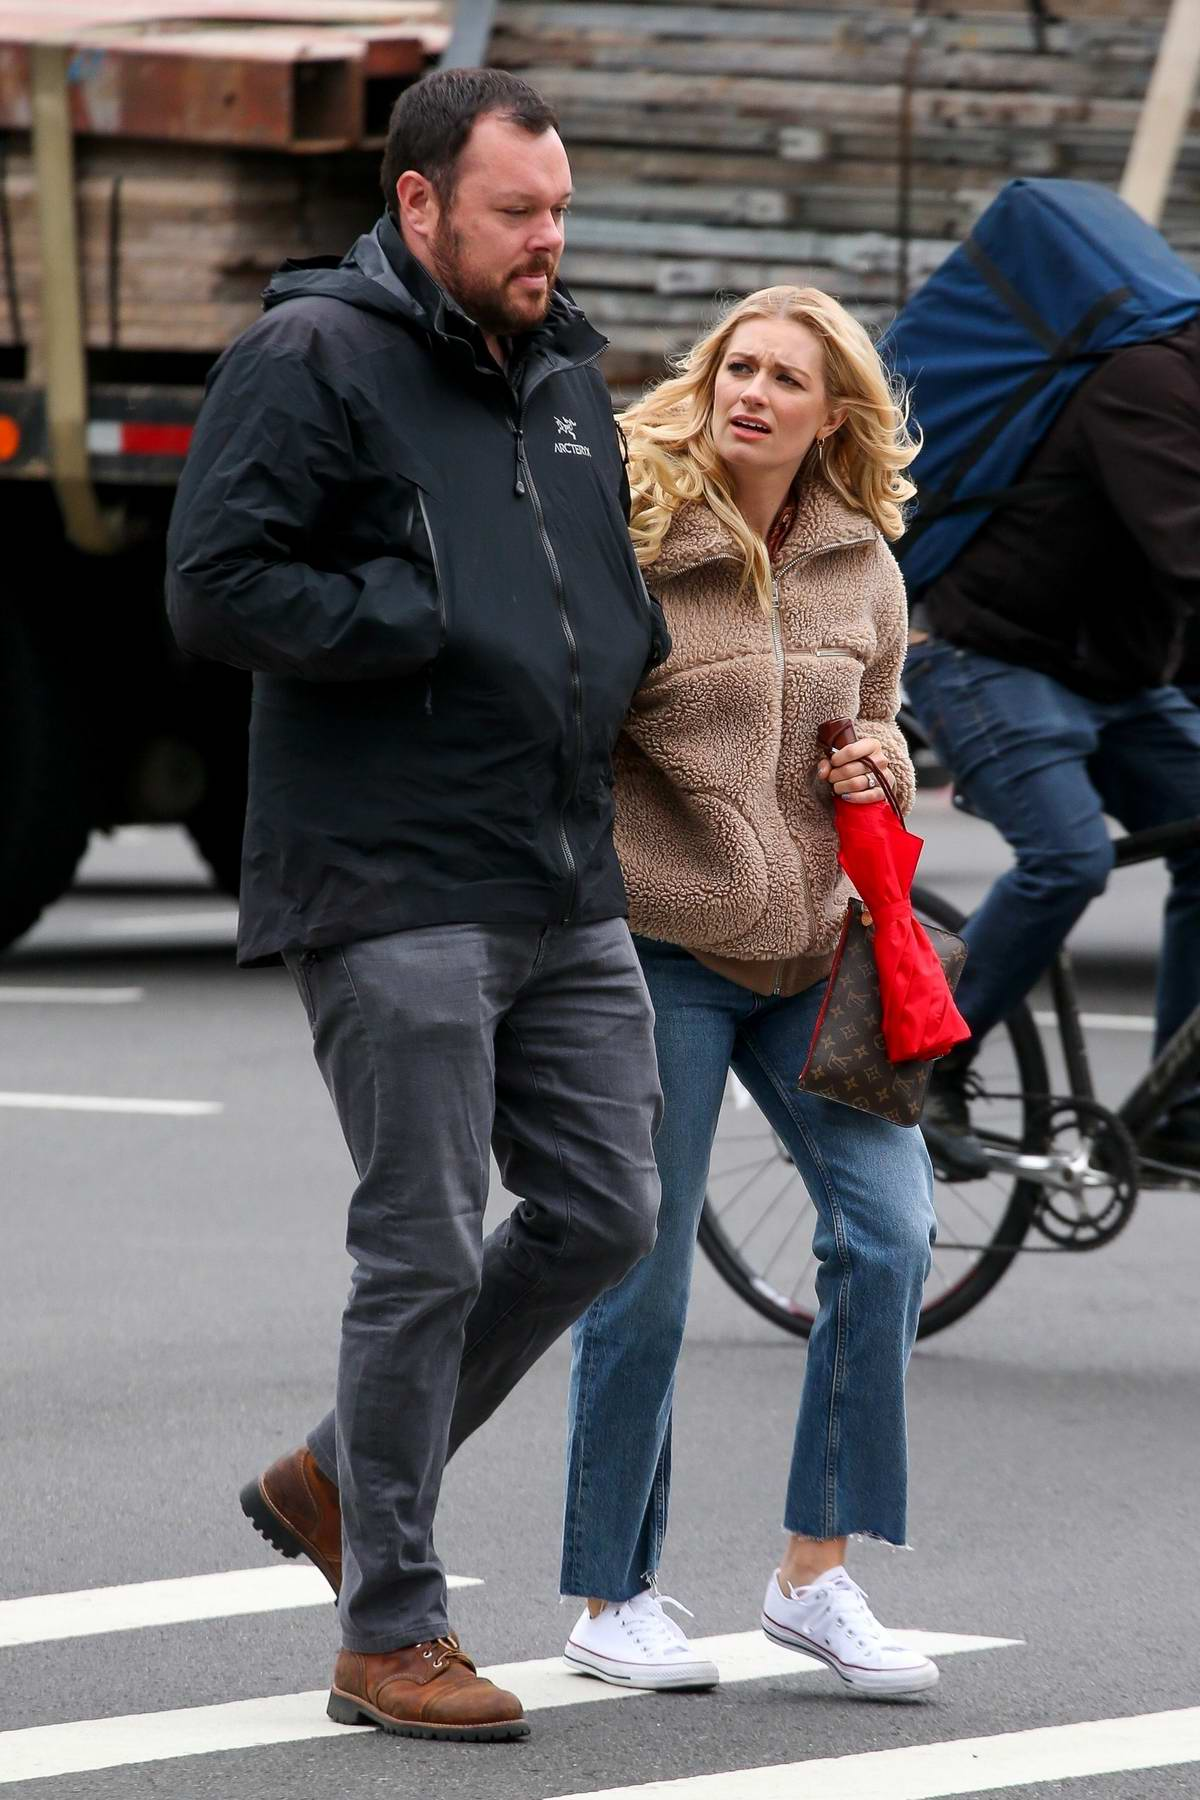 Beth Behrs and husband Michael Gladis steps out for a walk in New York City